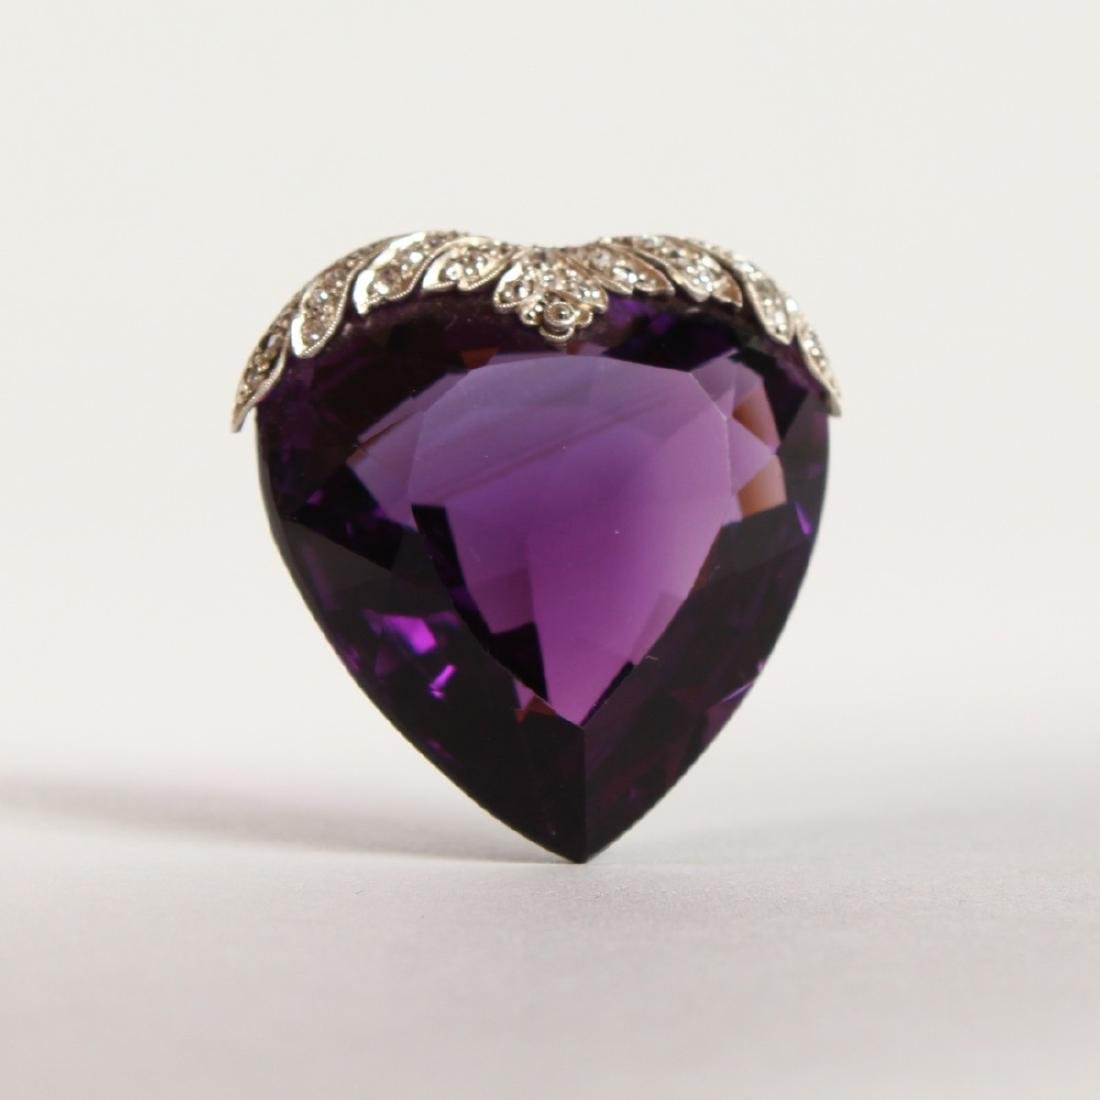 A LARGE HEART SHAPED DIAMOND MOUNTED AMETHYST PENDANT.